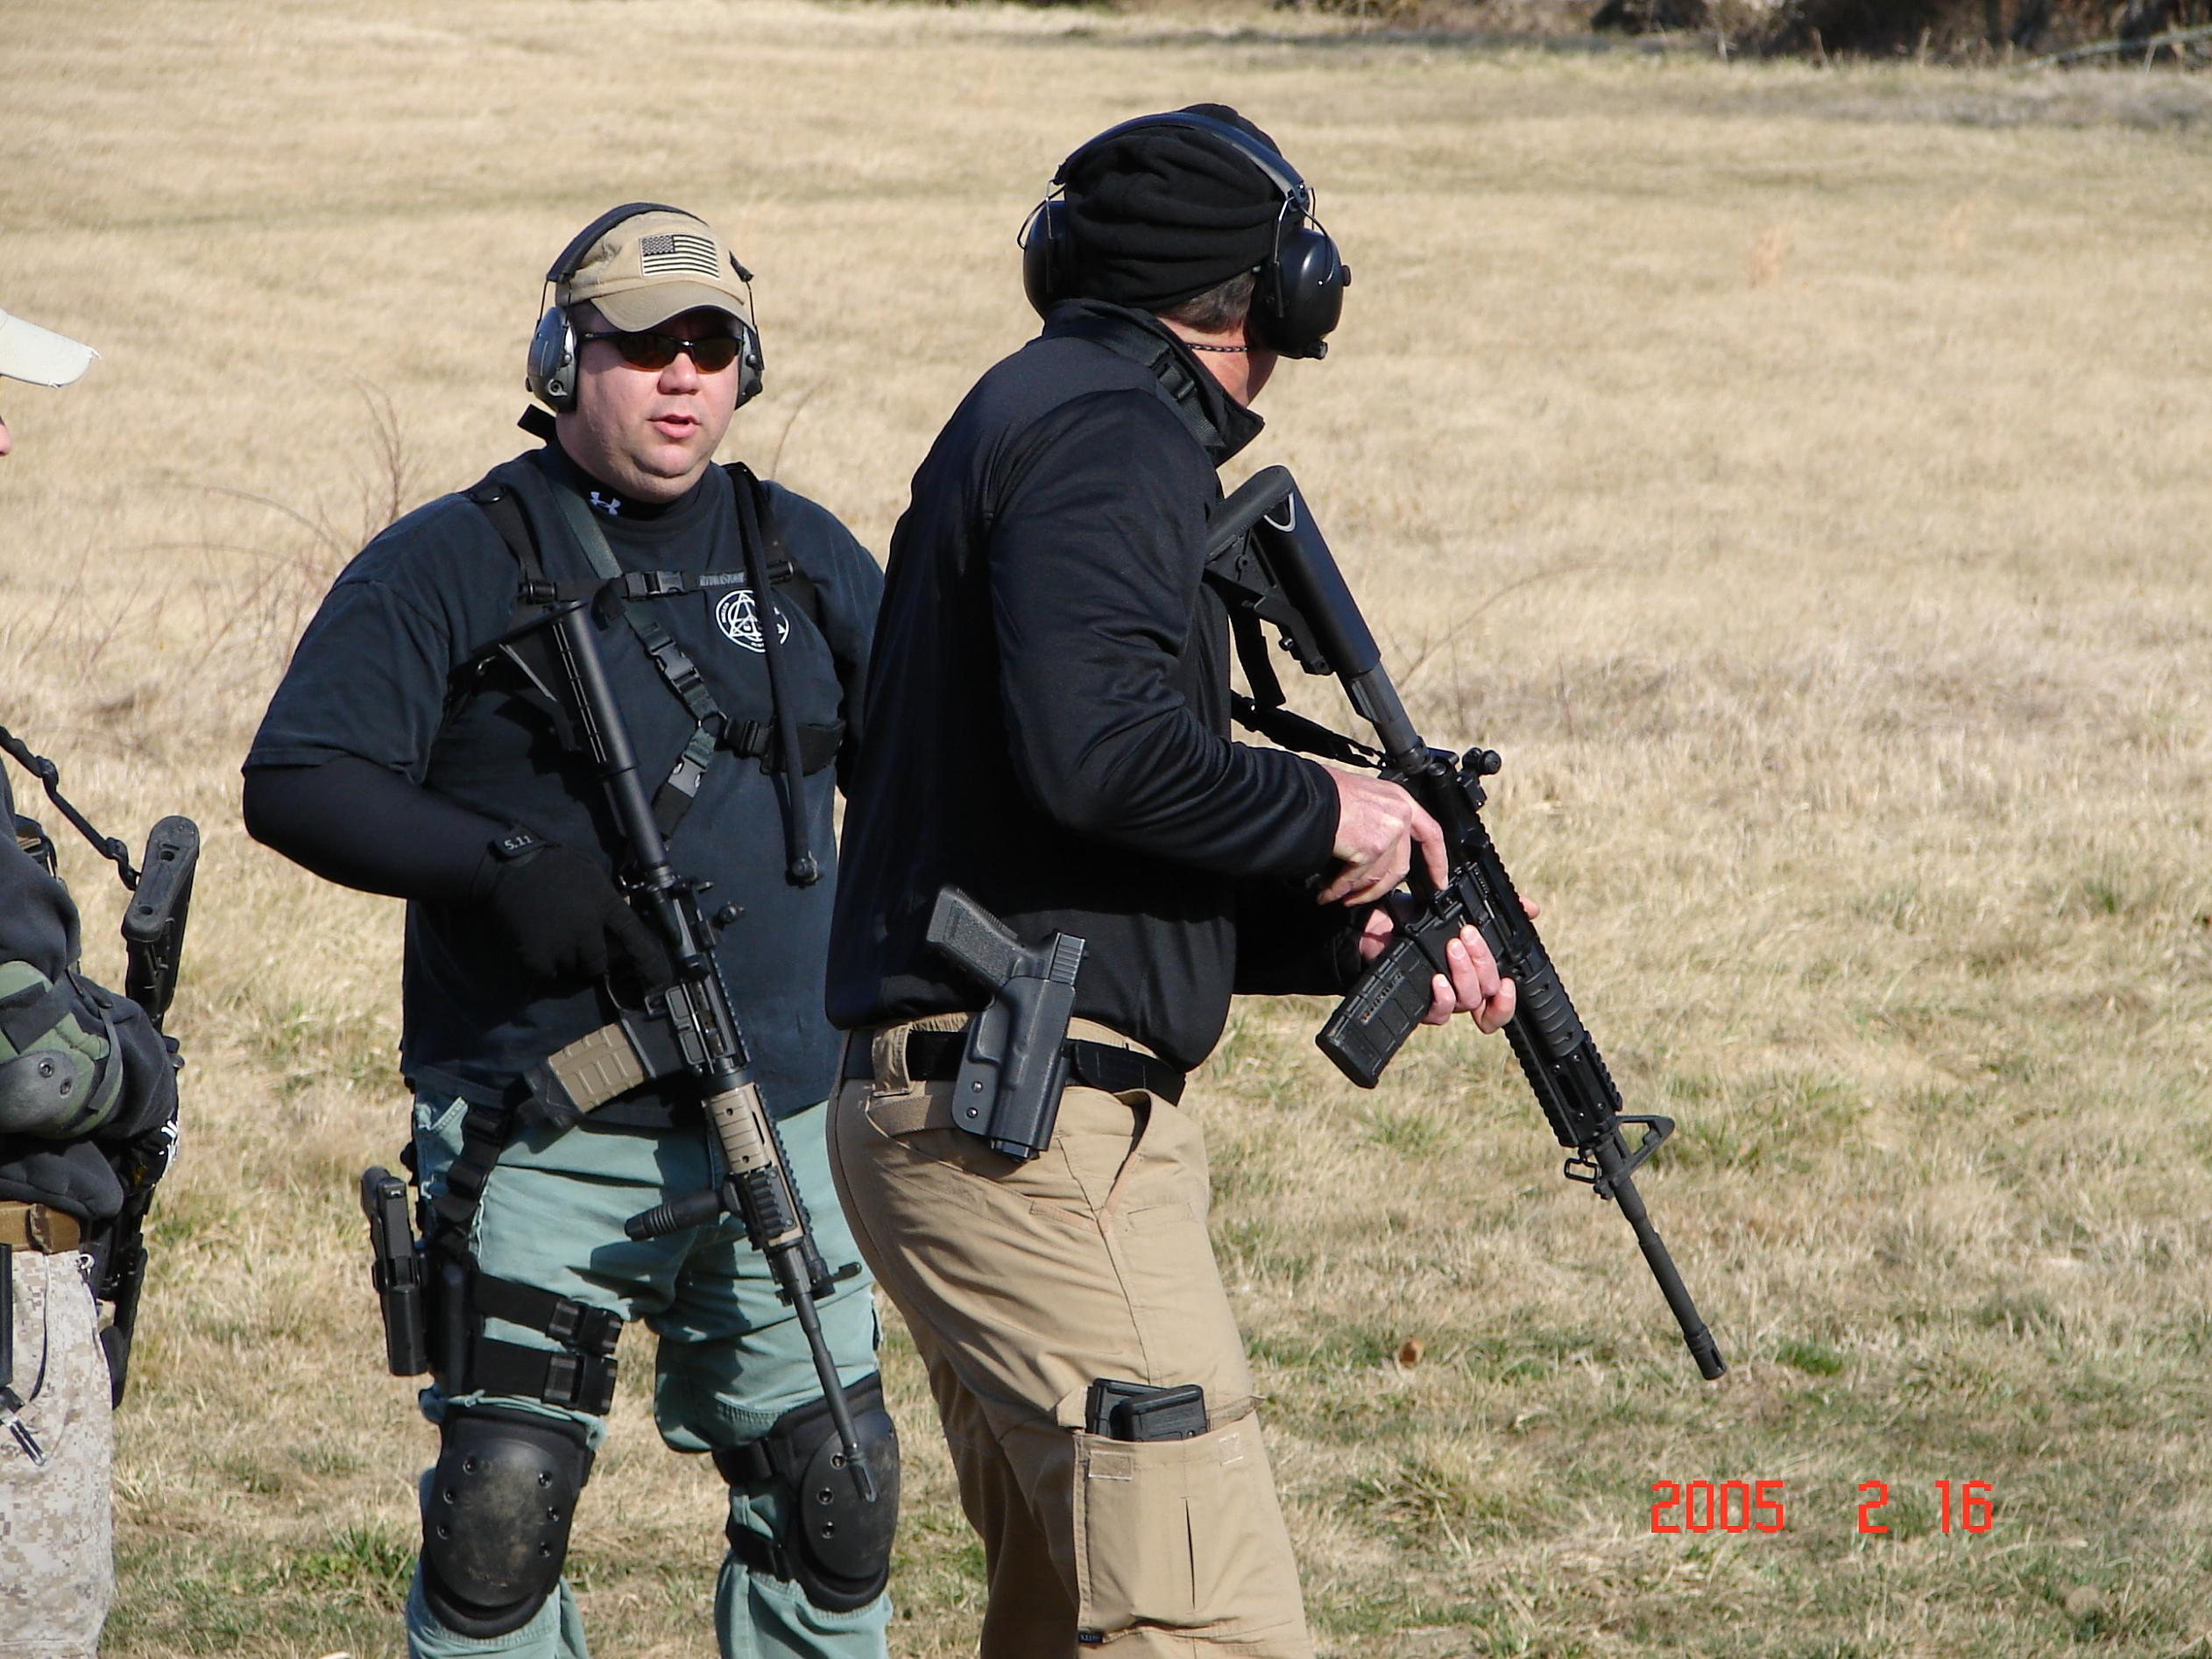 Pictures from the PTTA M4/ Tactical Carbine Course-041.jpg